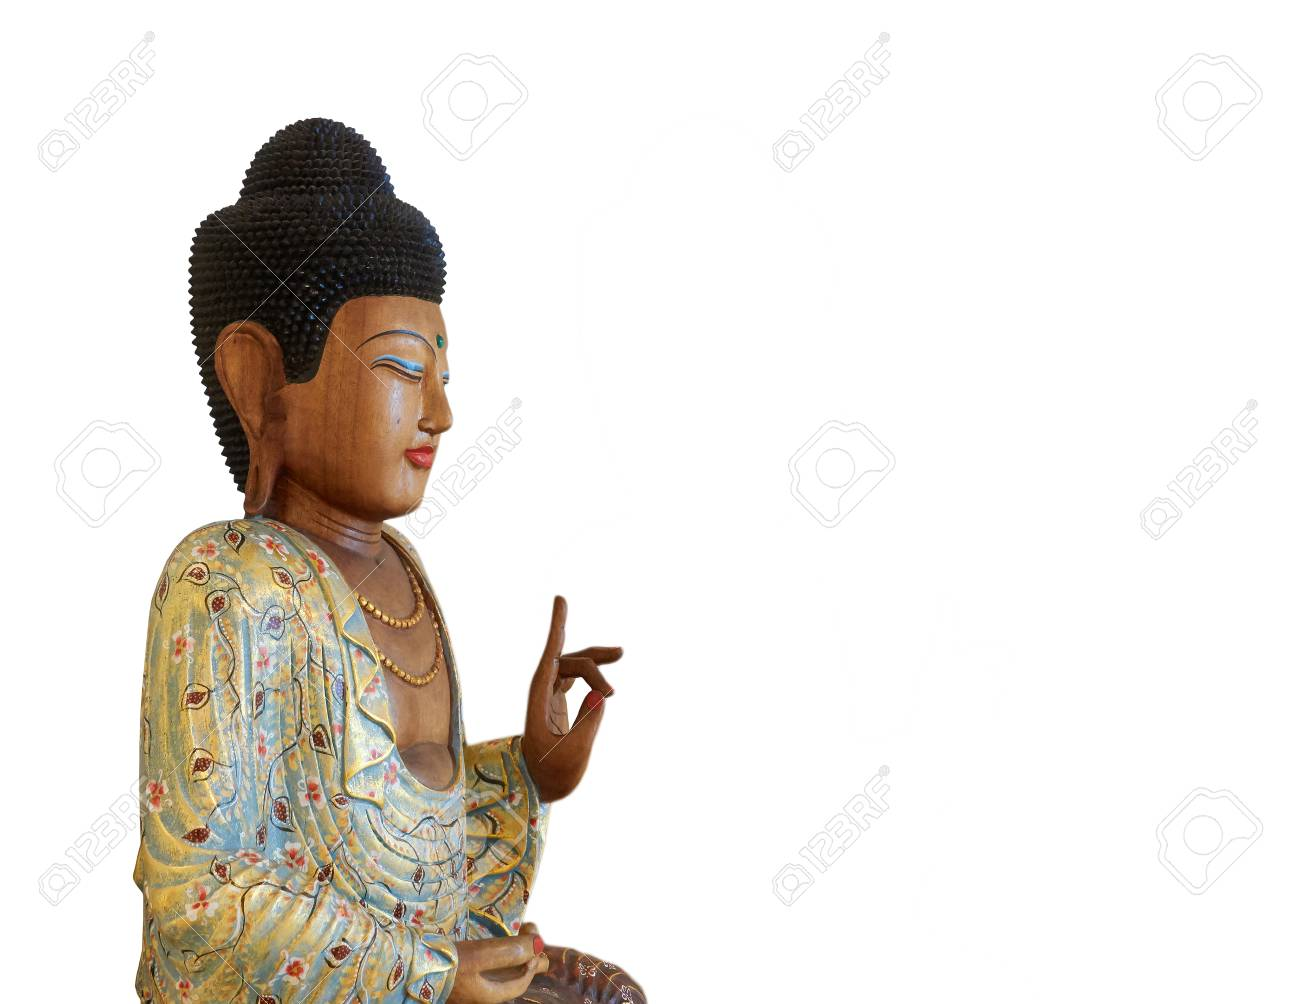 Wooden Buddha Statue Sitting On A Lotus Flower Isolated On White